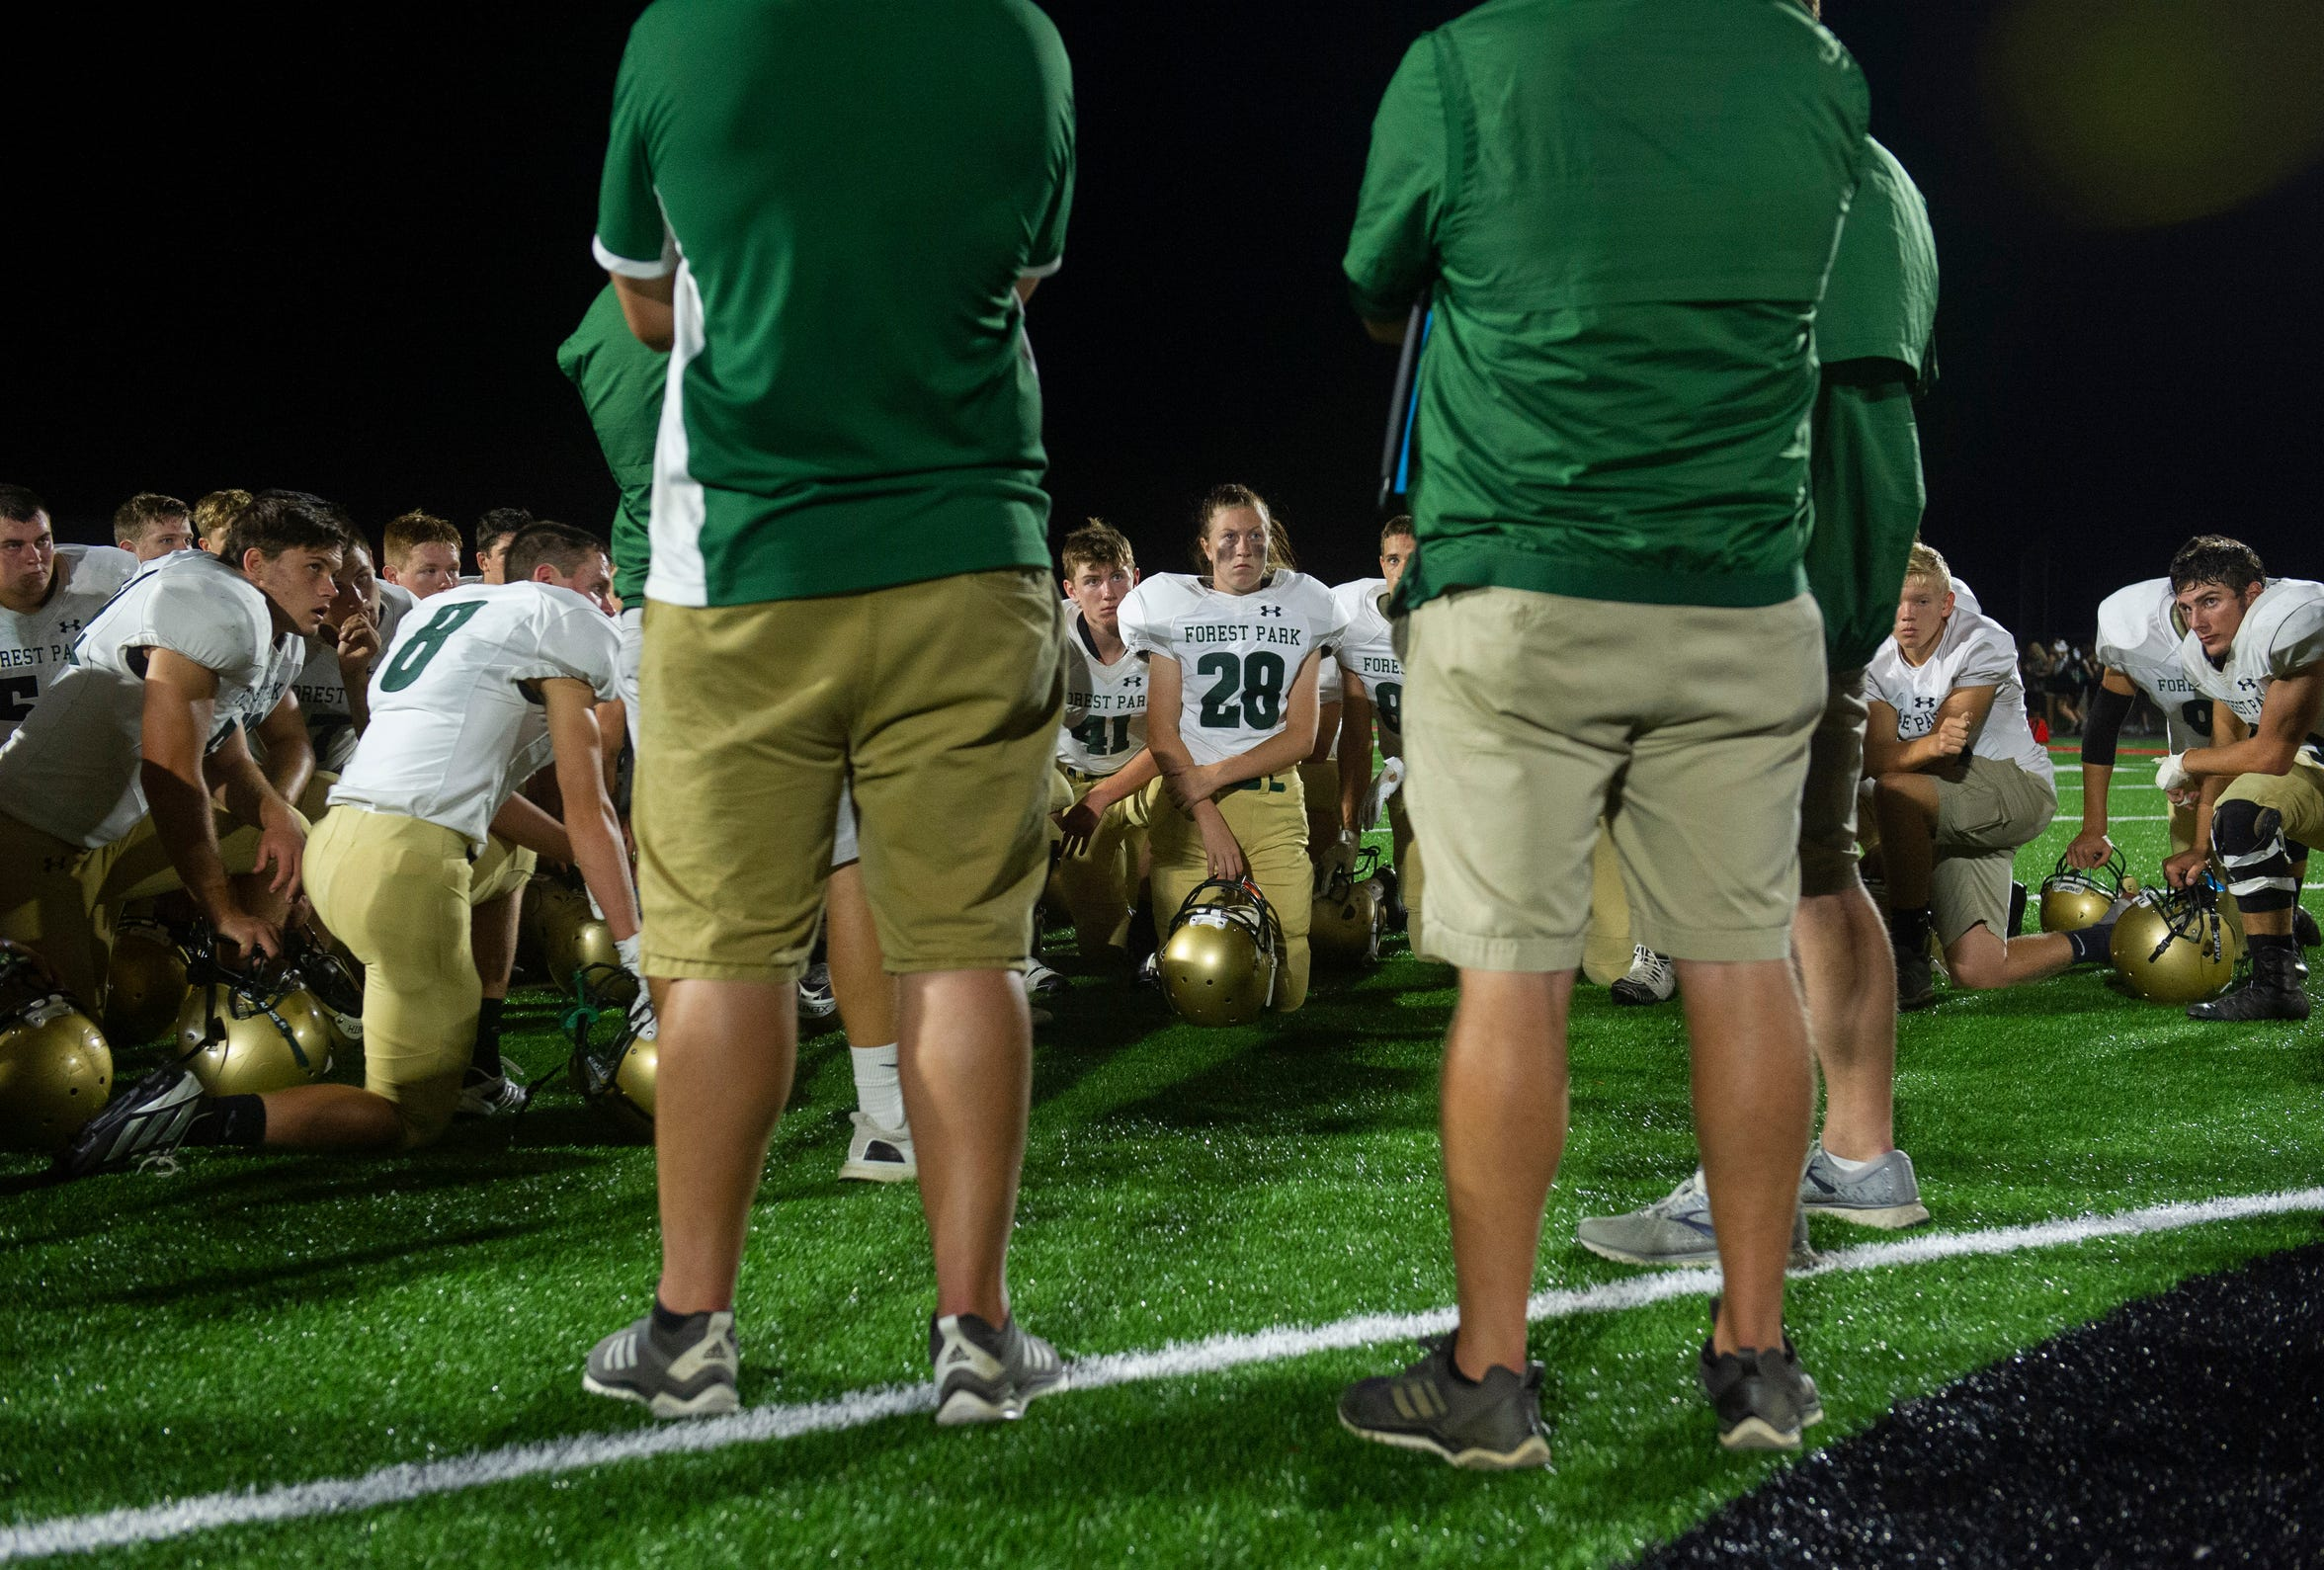 After a 24-11 defeat against the North Posey Vikings, the first loss of the season, the Forest Park Rangers take a knee and listen to their head coach Ross Fuhs at North Posey High School in Poseyville, Ind.